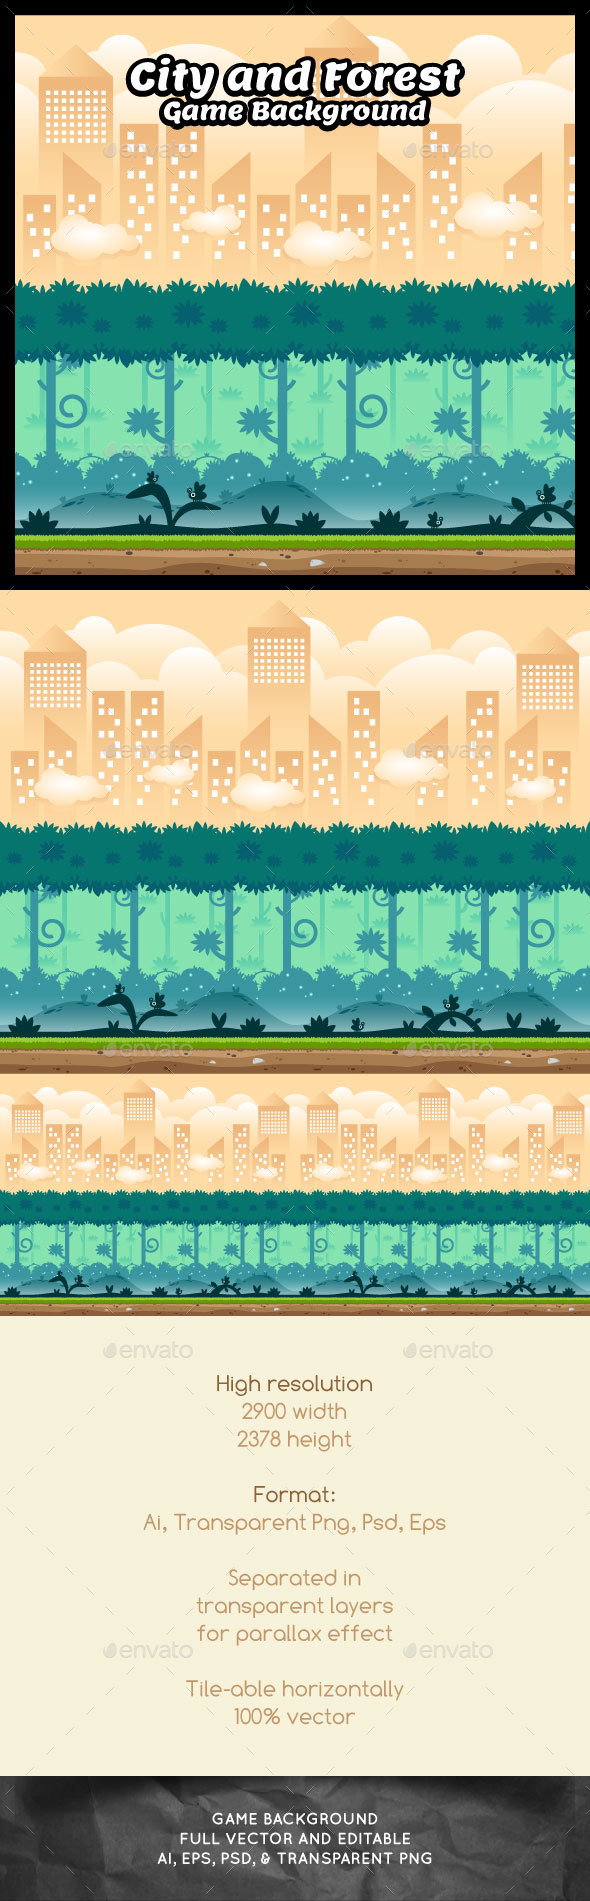 Graphicriver City and Forest Game Background 19265259